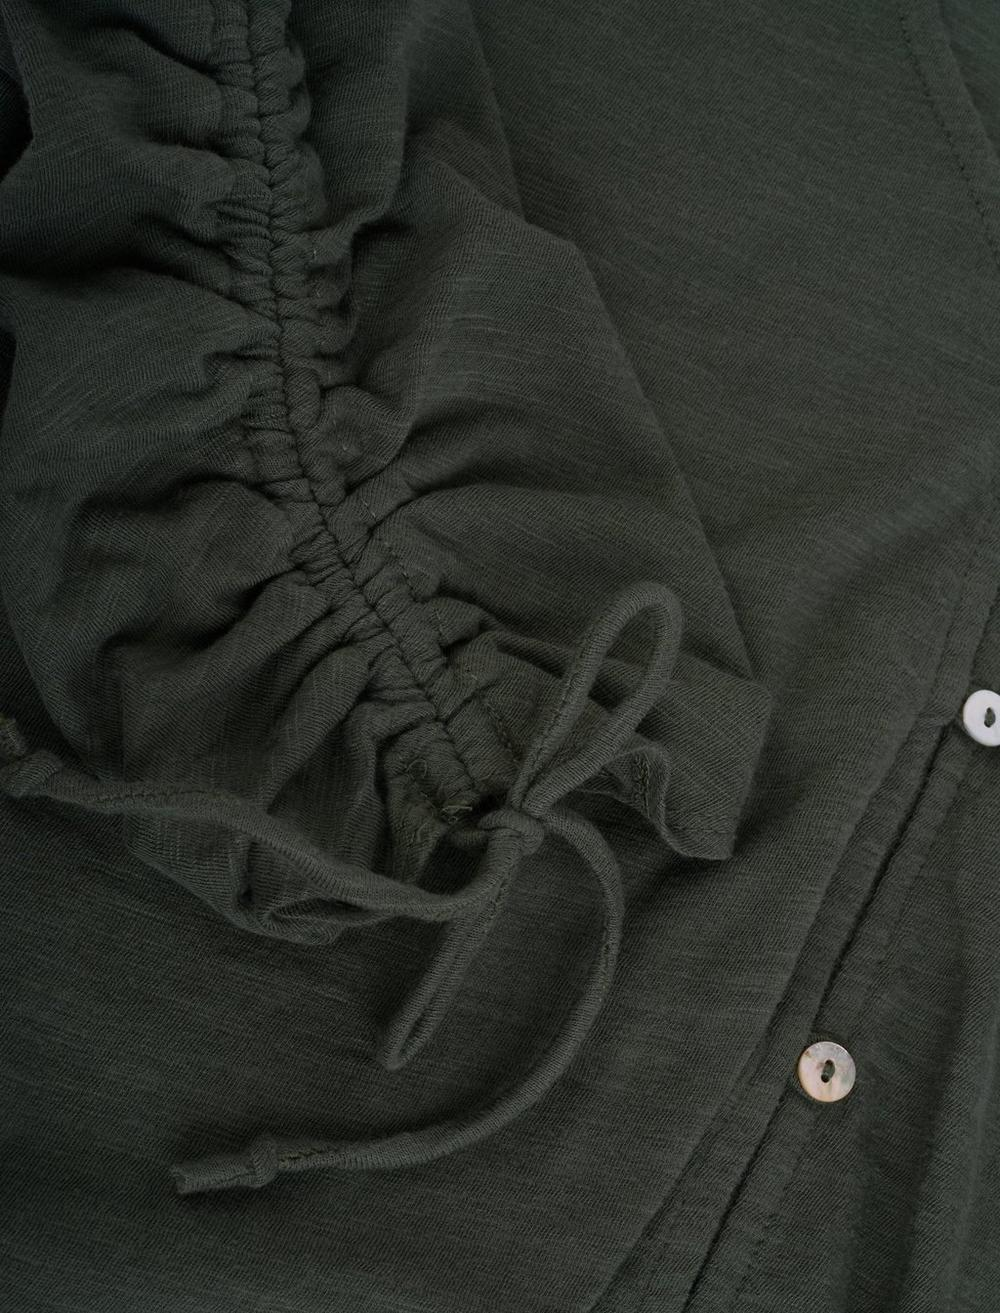 RUCHED SLEEVE TOP, image 2